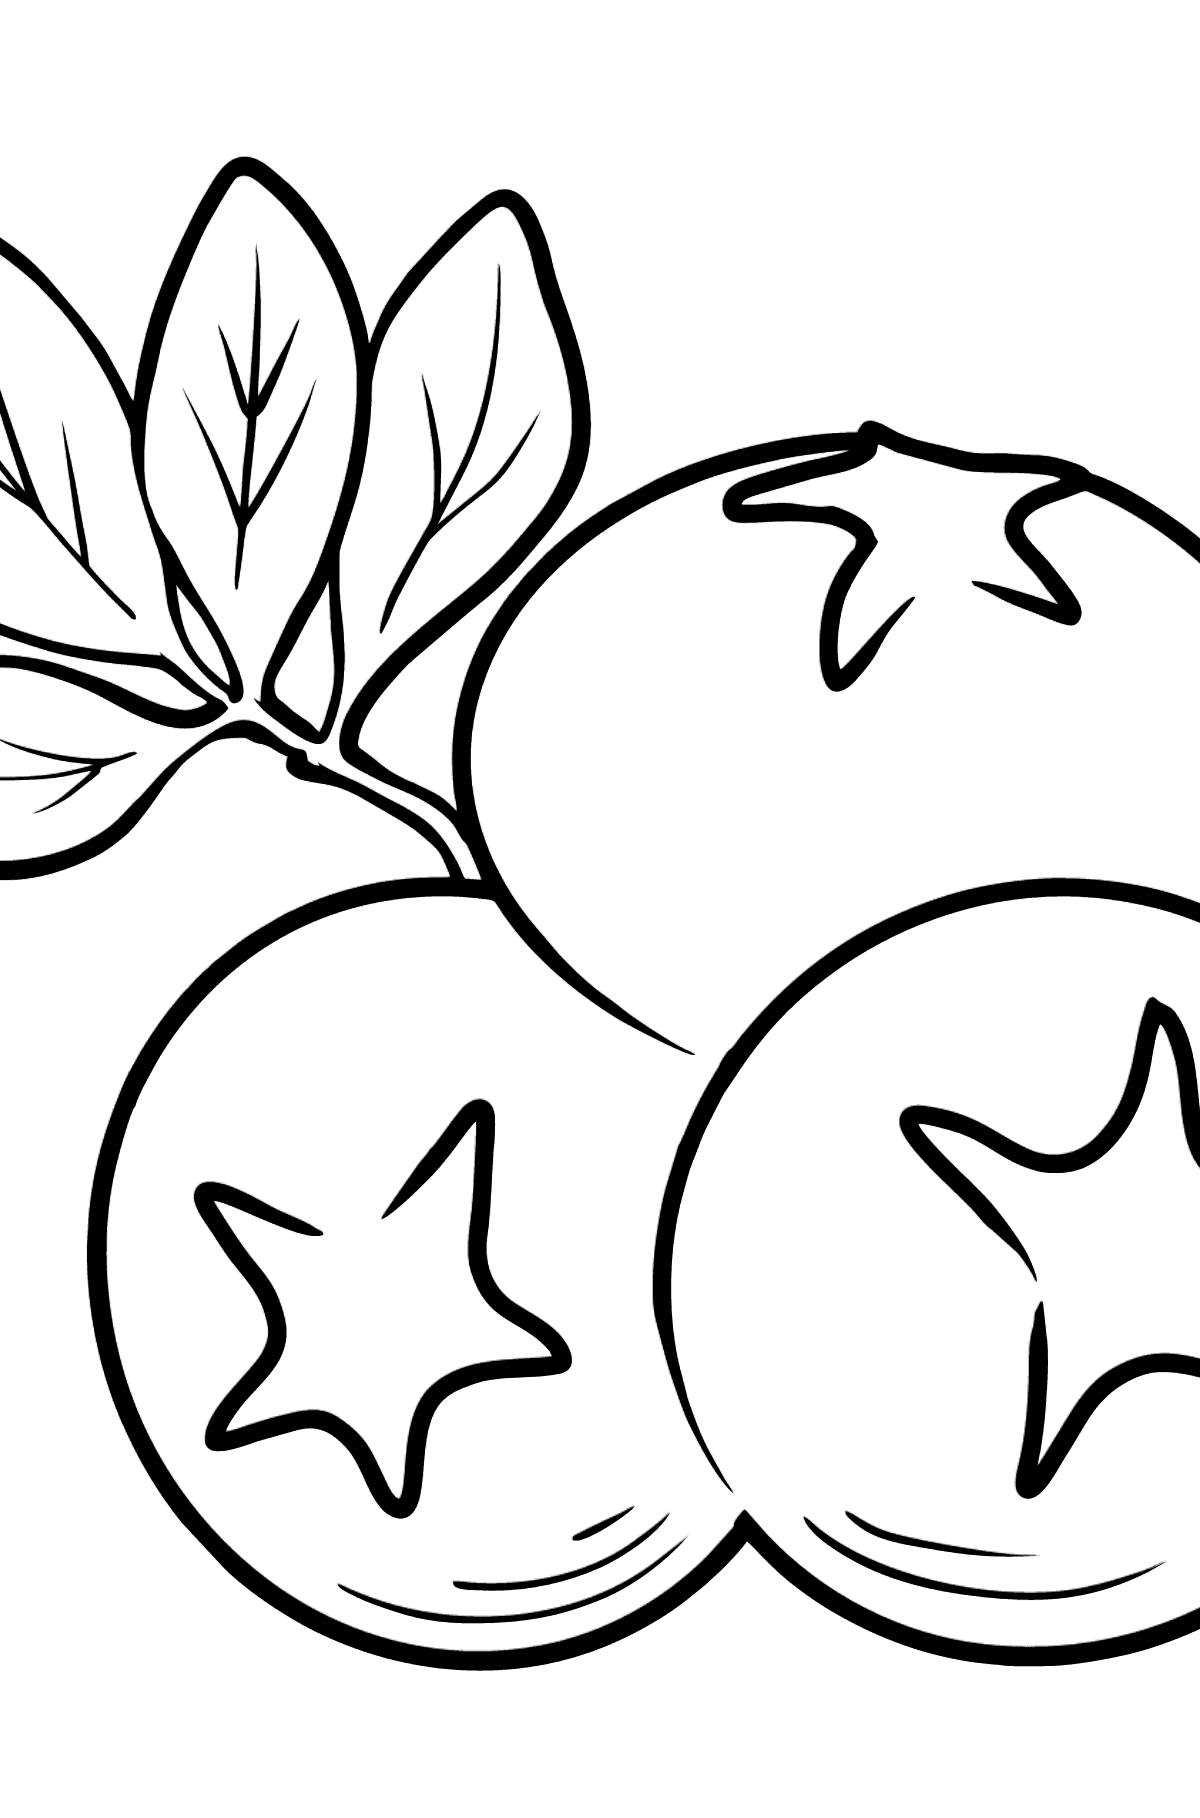 Blueberry coloring page - Coloring Pages for Kids